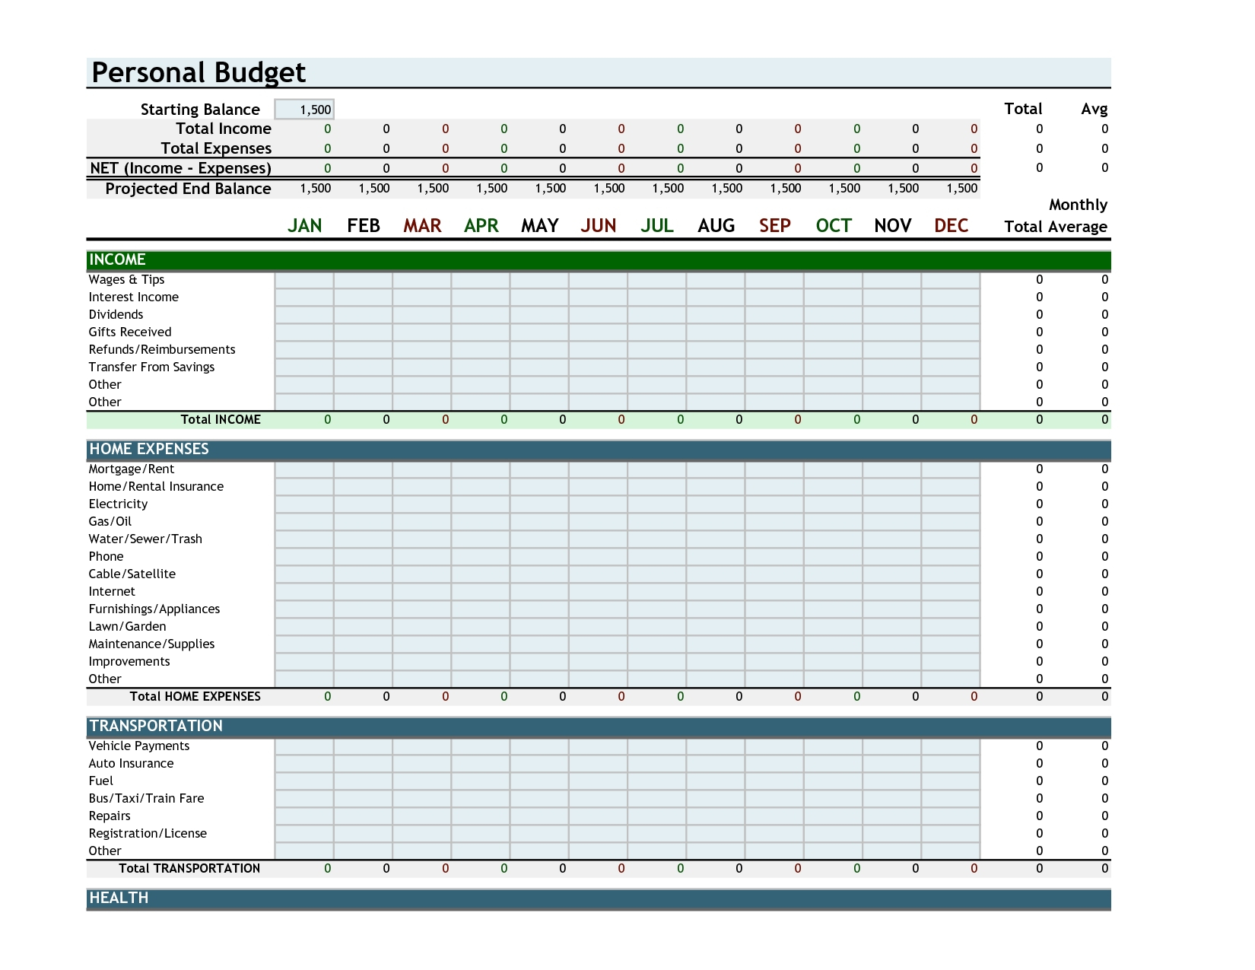 Personal Budget Template Spreadsheet Examples Simple Beautiful With Monthly Financial Budget Template